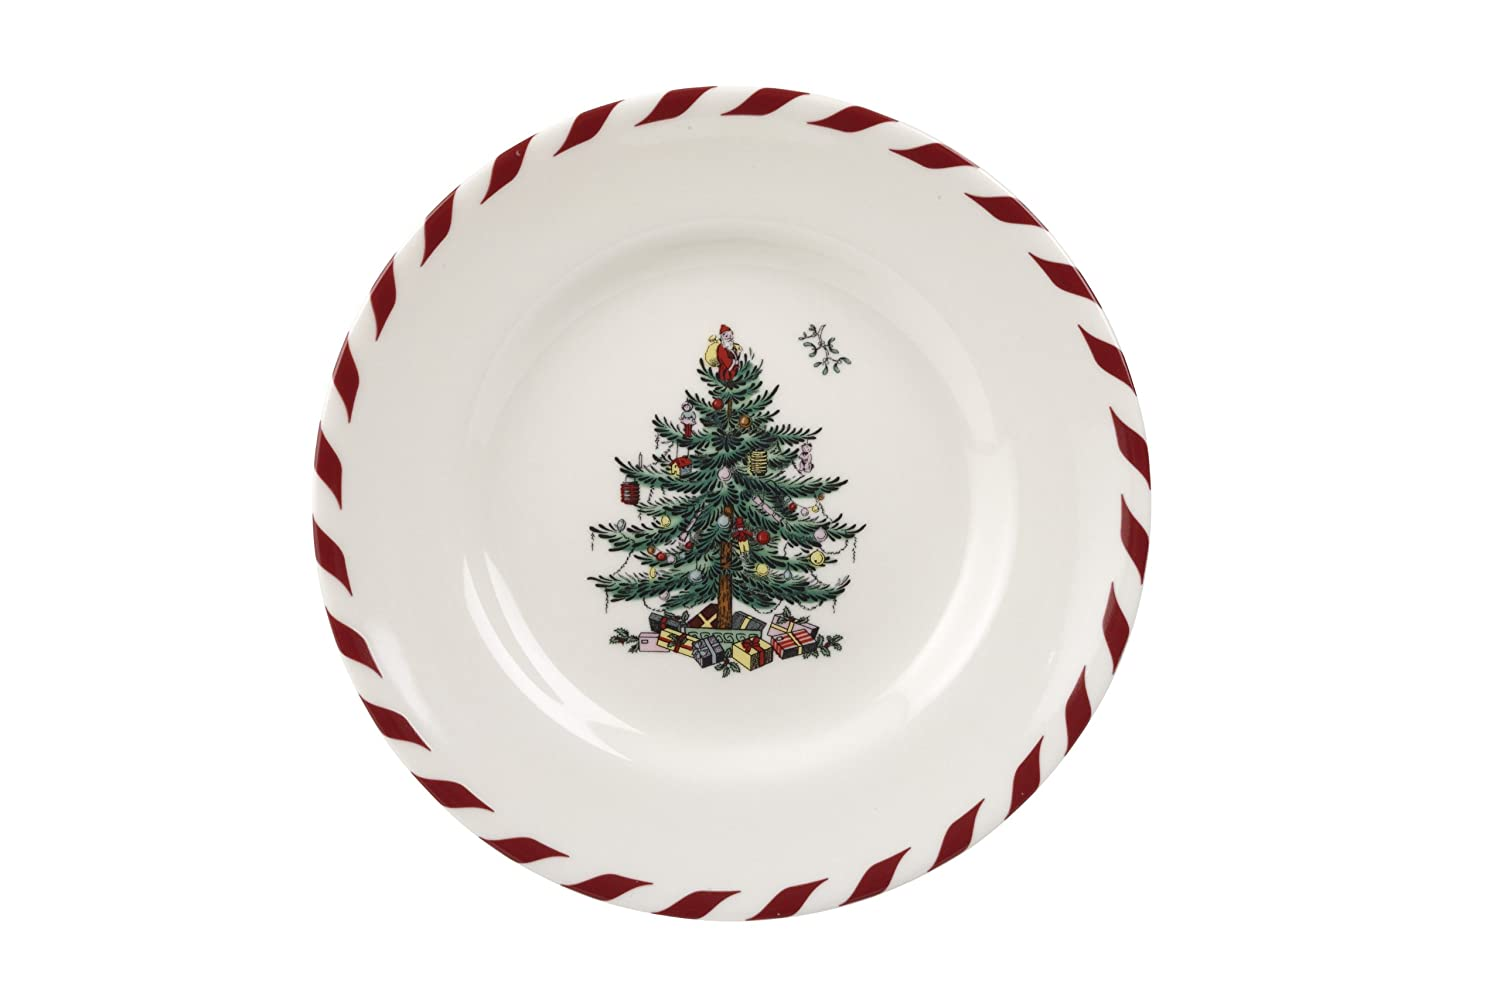 Amazon.com | Spode Christmas Tree Peppermint Canape Plate 6-1/2-Inch Set of 4 Dinner Plates  sc 1 st  Amazon.com & Amazon.com | Spode Christmas Tree Peppermint Canape Plate 6-1/2 ...